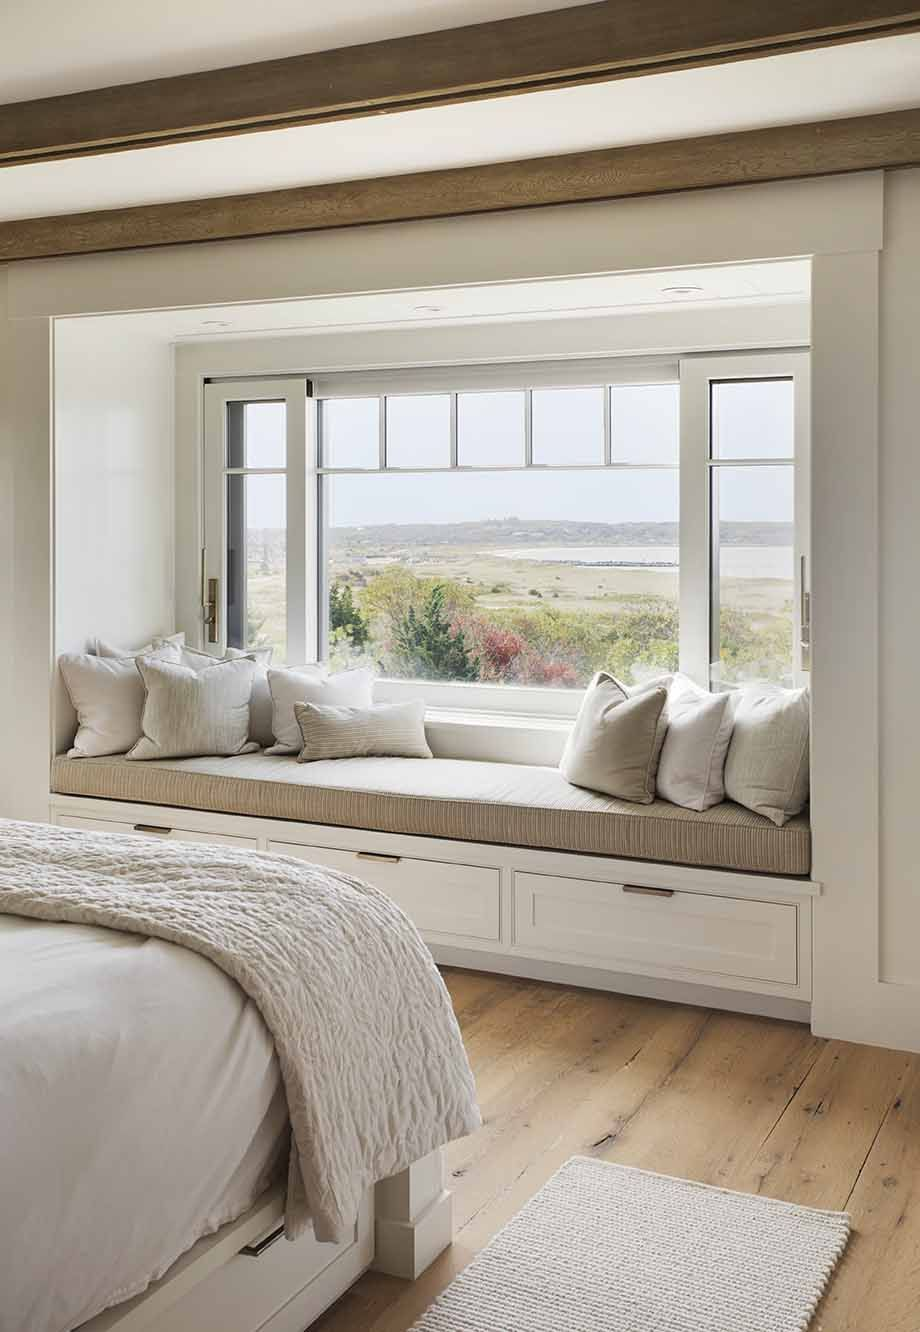 Bed beside window ideas  gorgeous beach house in massachusetts with barnlike details  for